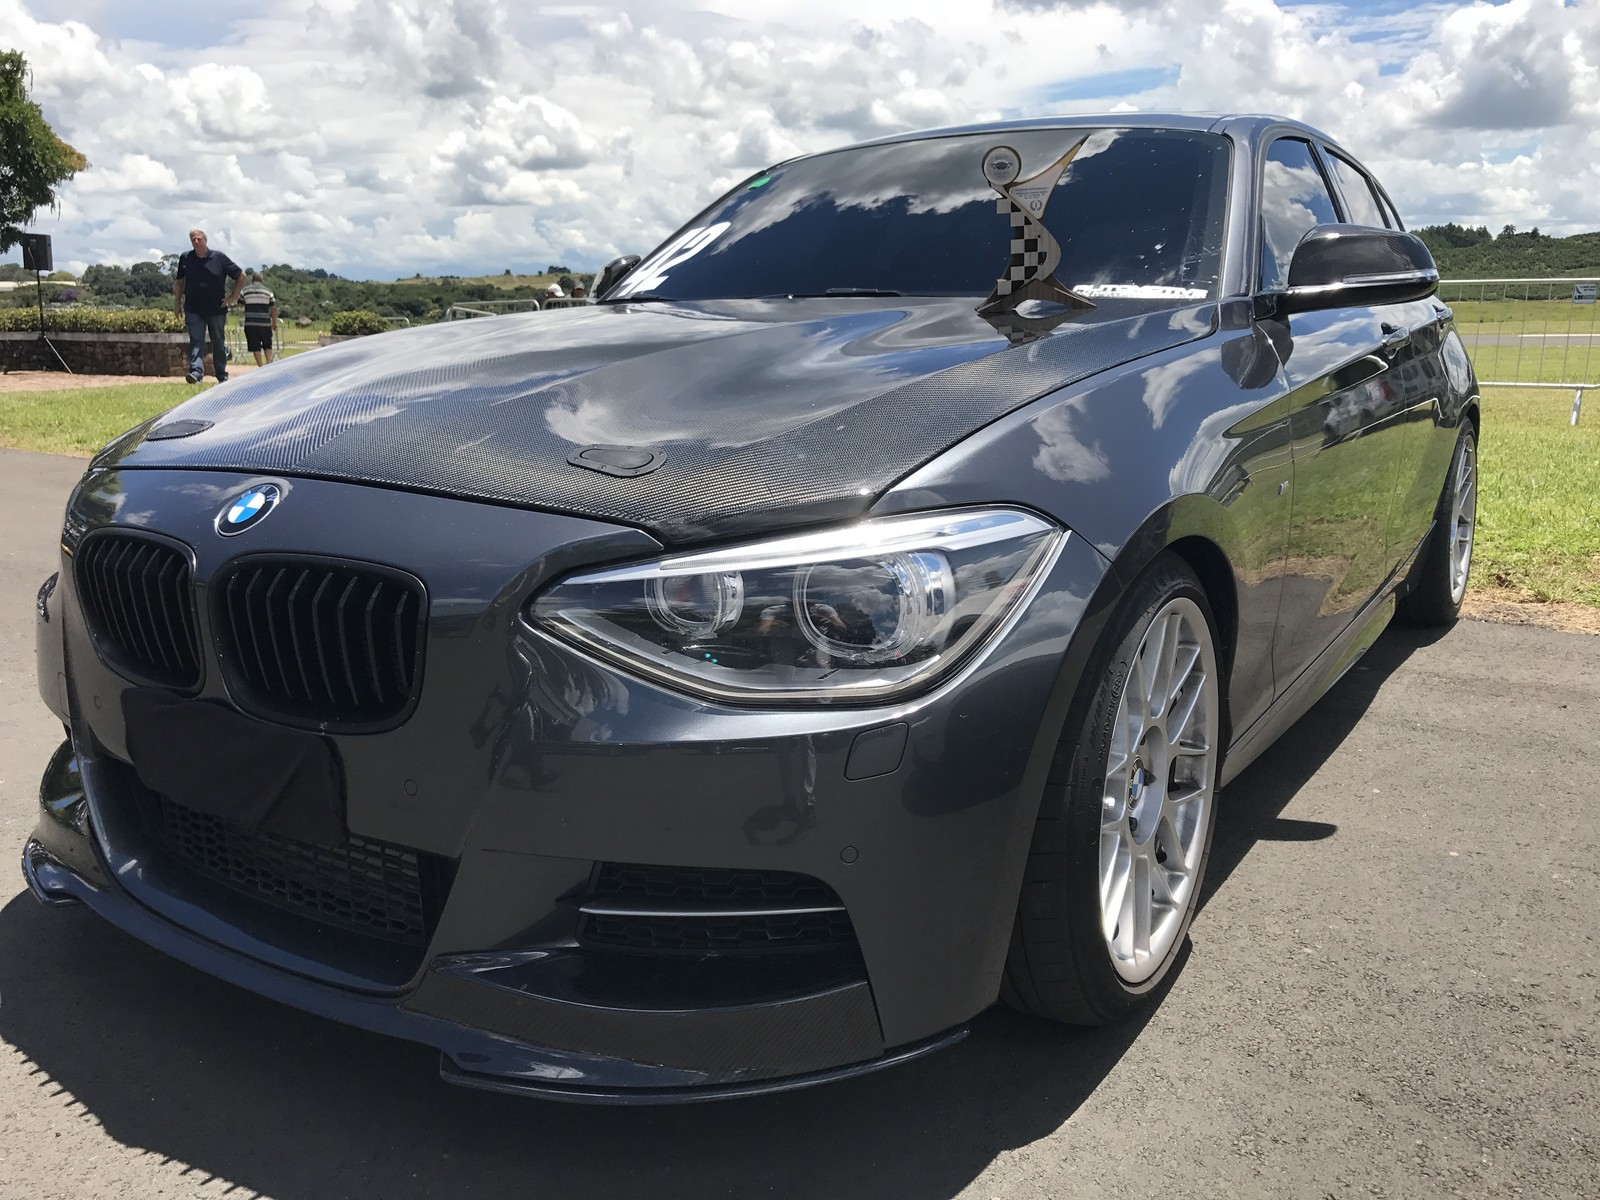 2015 Mineral Gray BMW M135i  picture, mods, upgrades